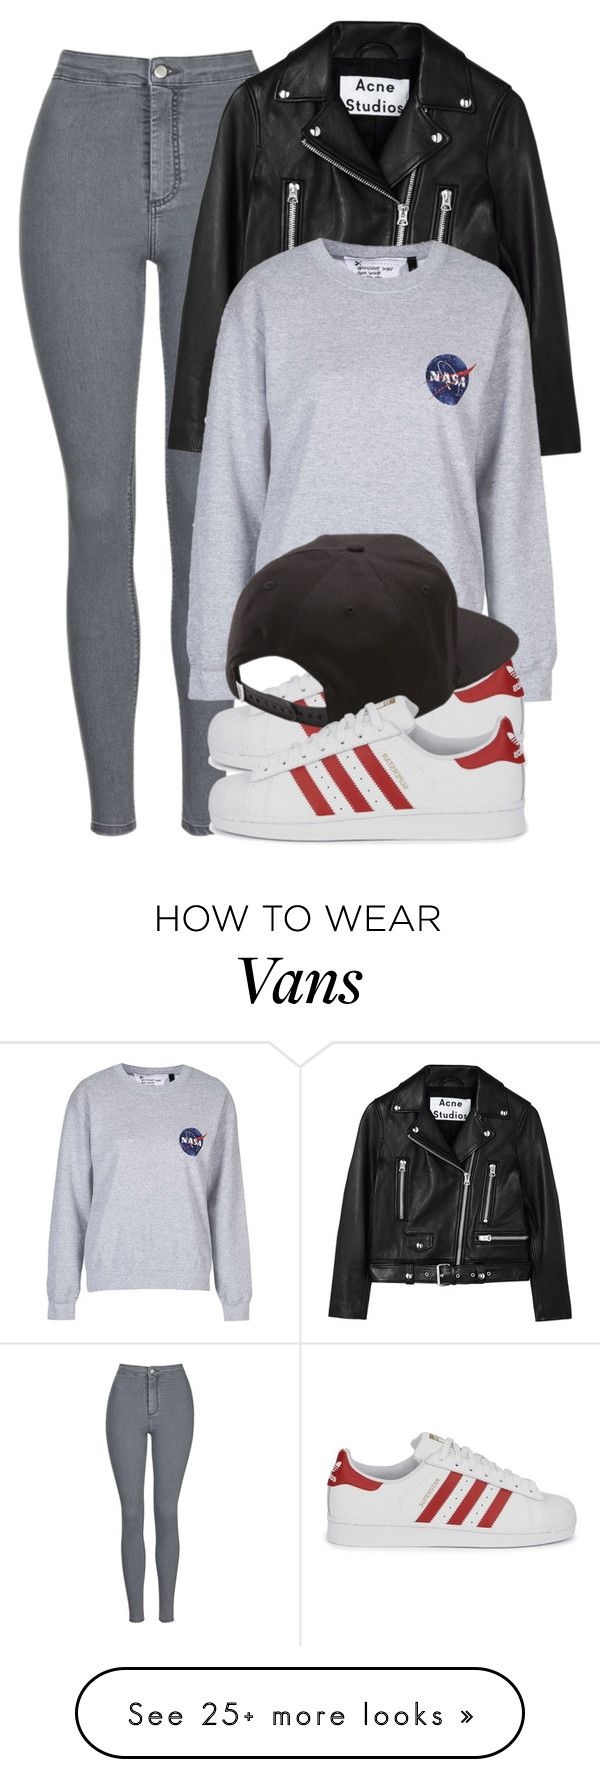 """Untitled #1434"" by noka76 on Polyvore featuring Topshop, Acne Studios, adidas…"